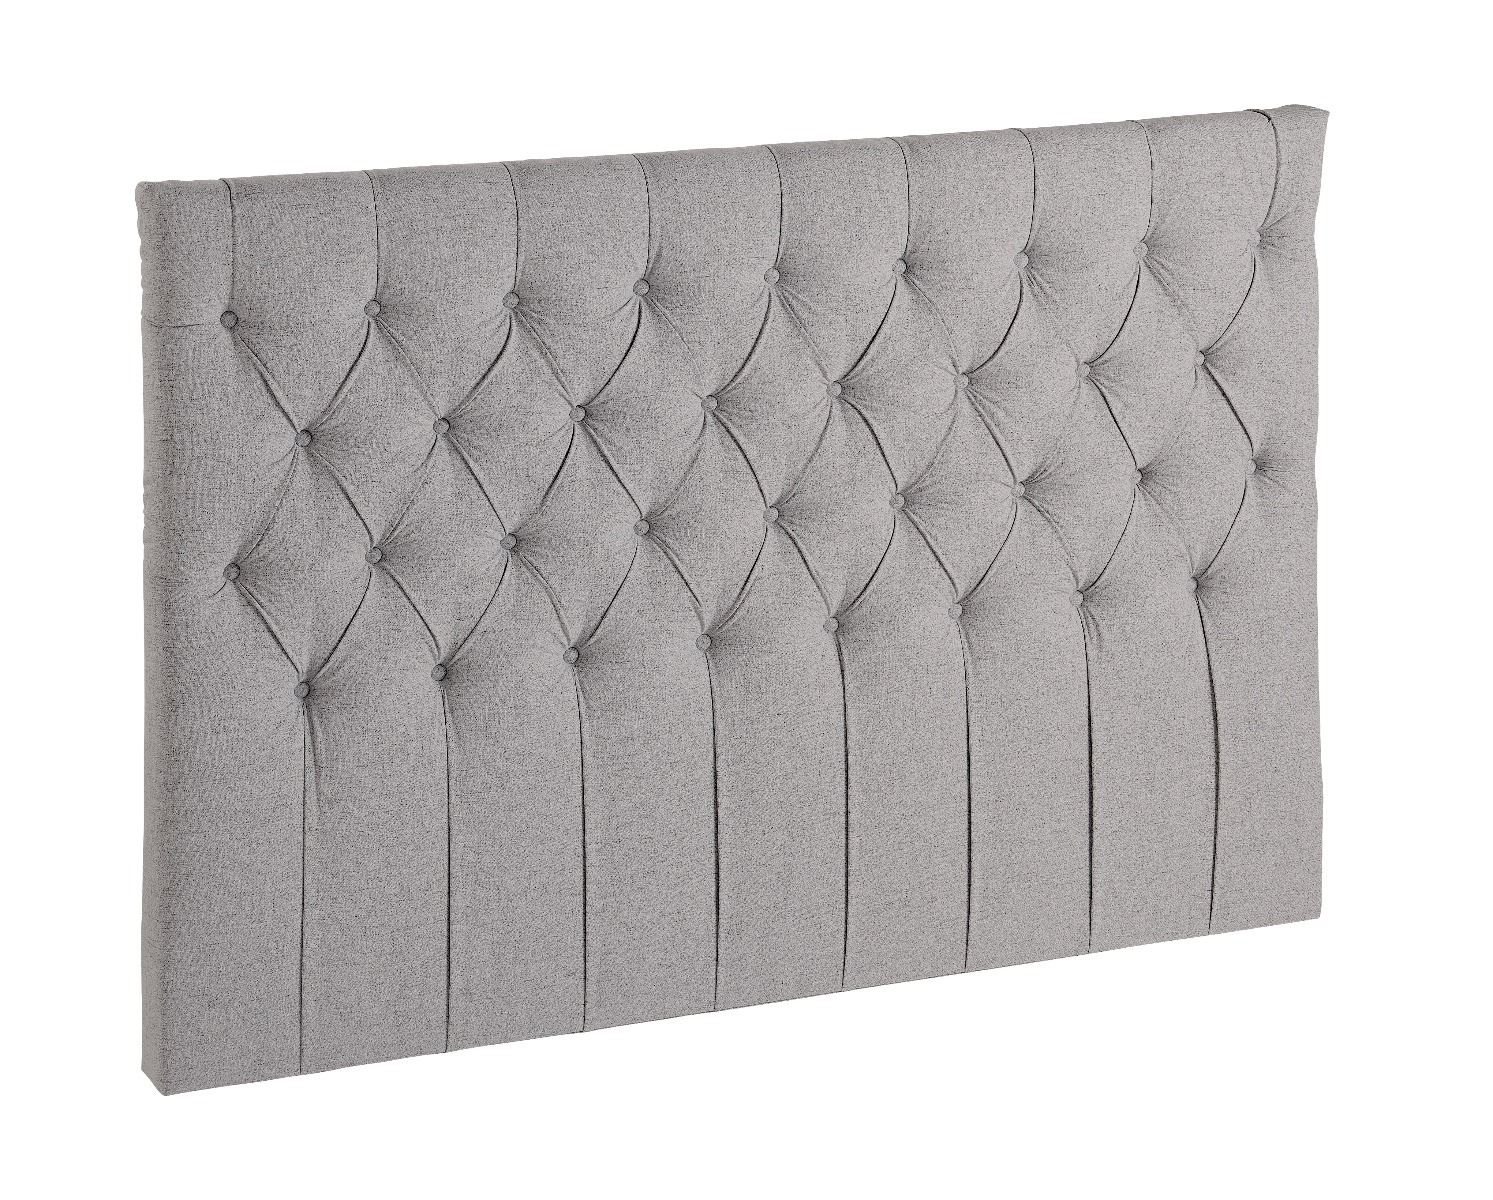 Image of Senses Lux Gavl Chesterfield - 210 x 120 (6872)